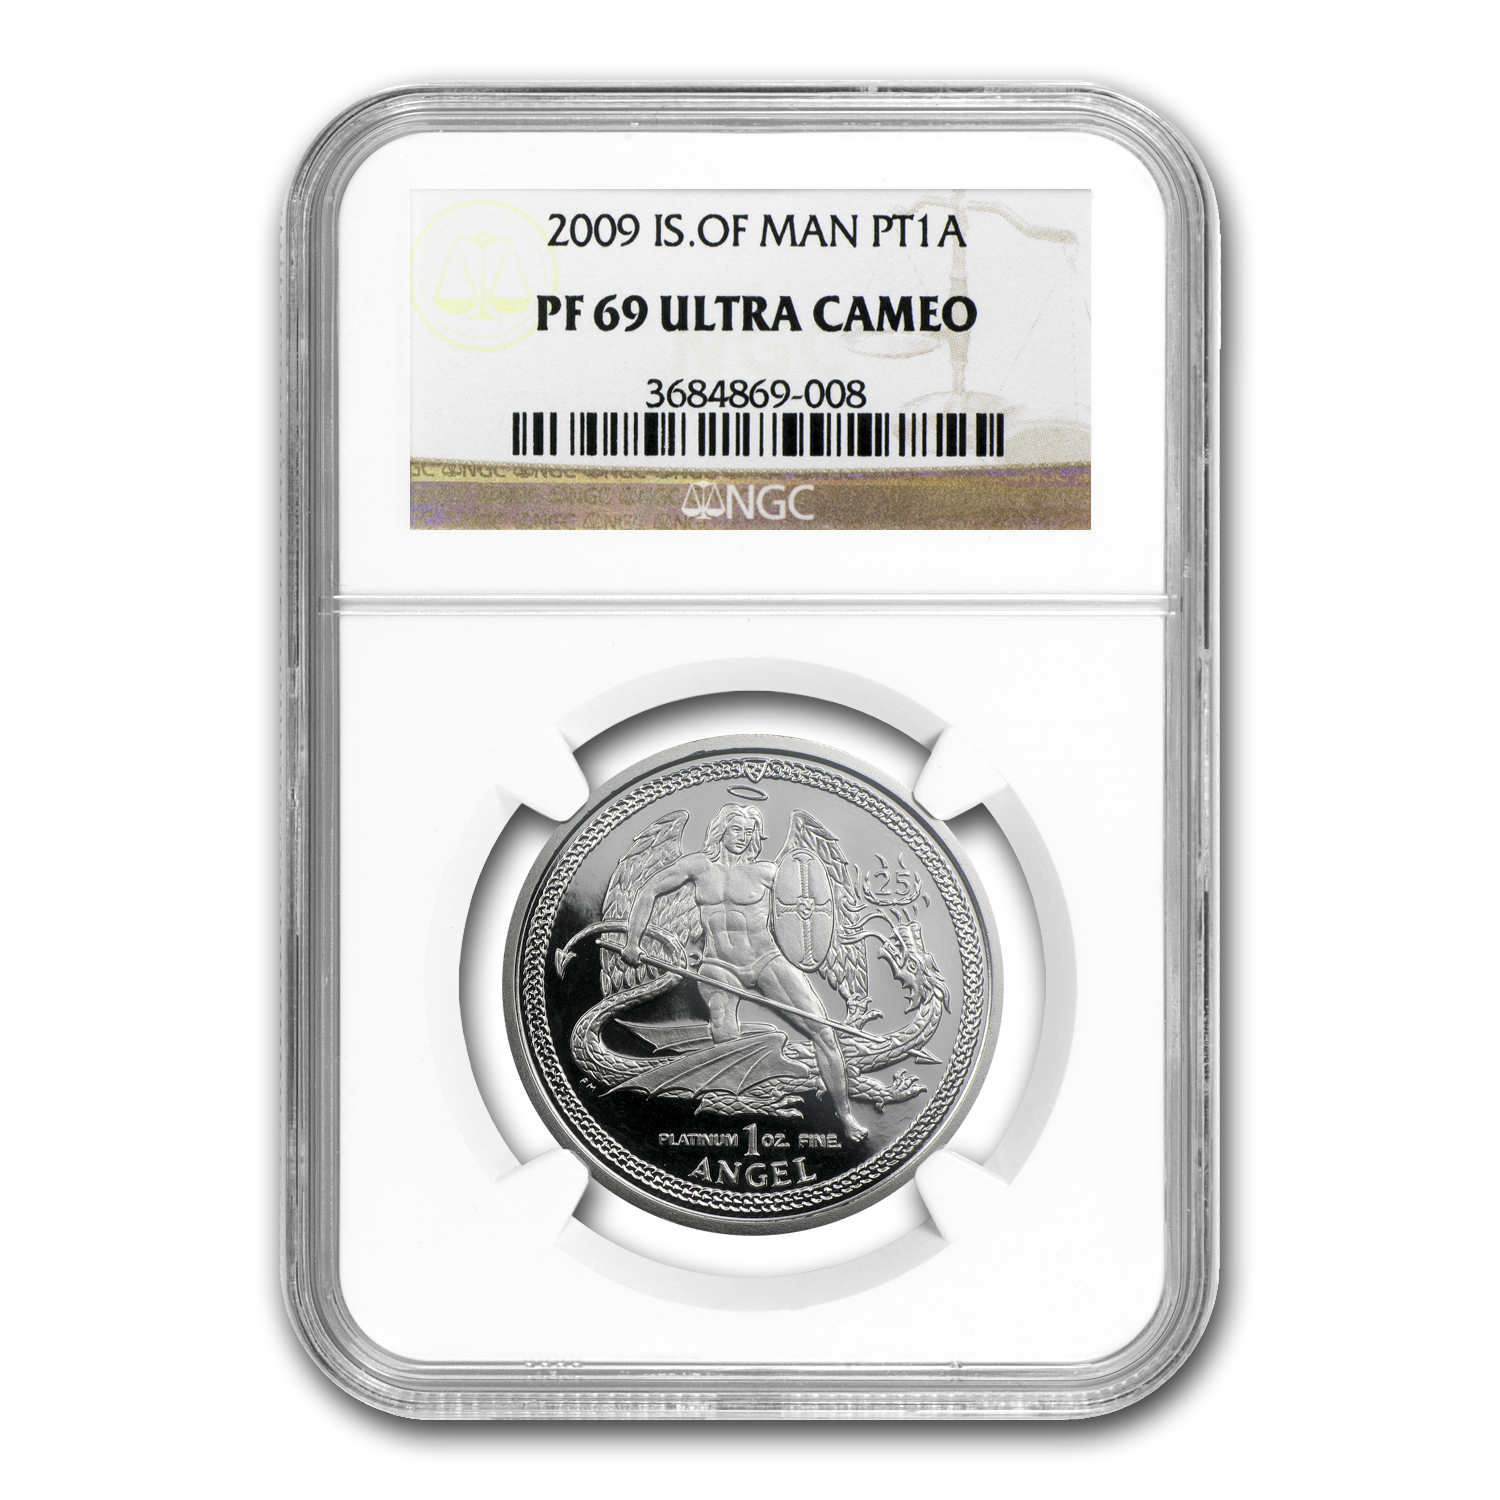 2009 Isle of Man 1 oz Platinum Angel PF-69 NGC